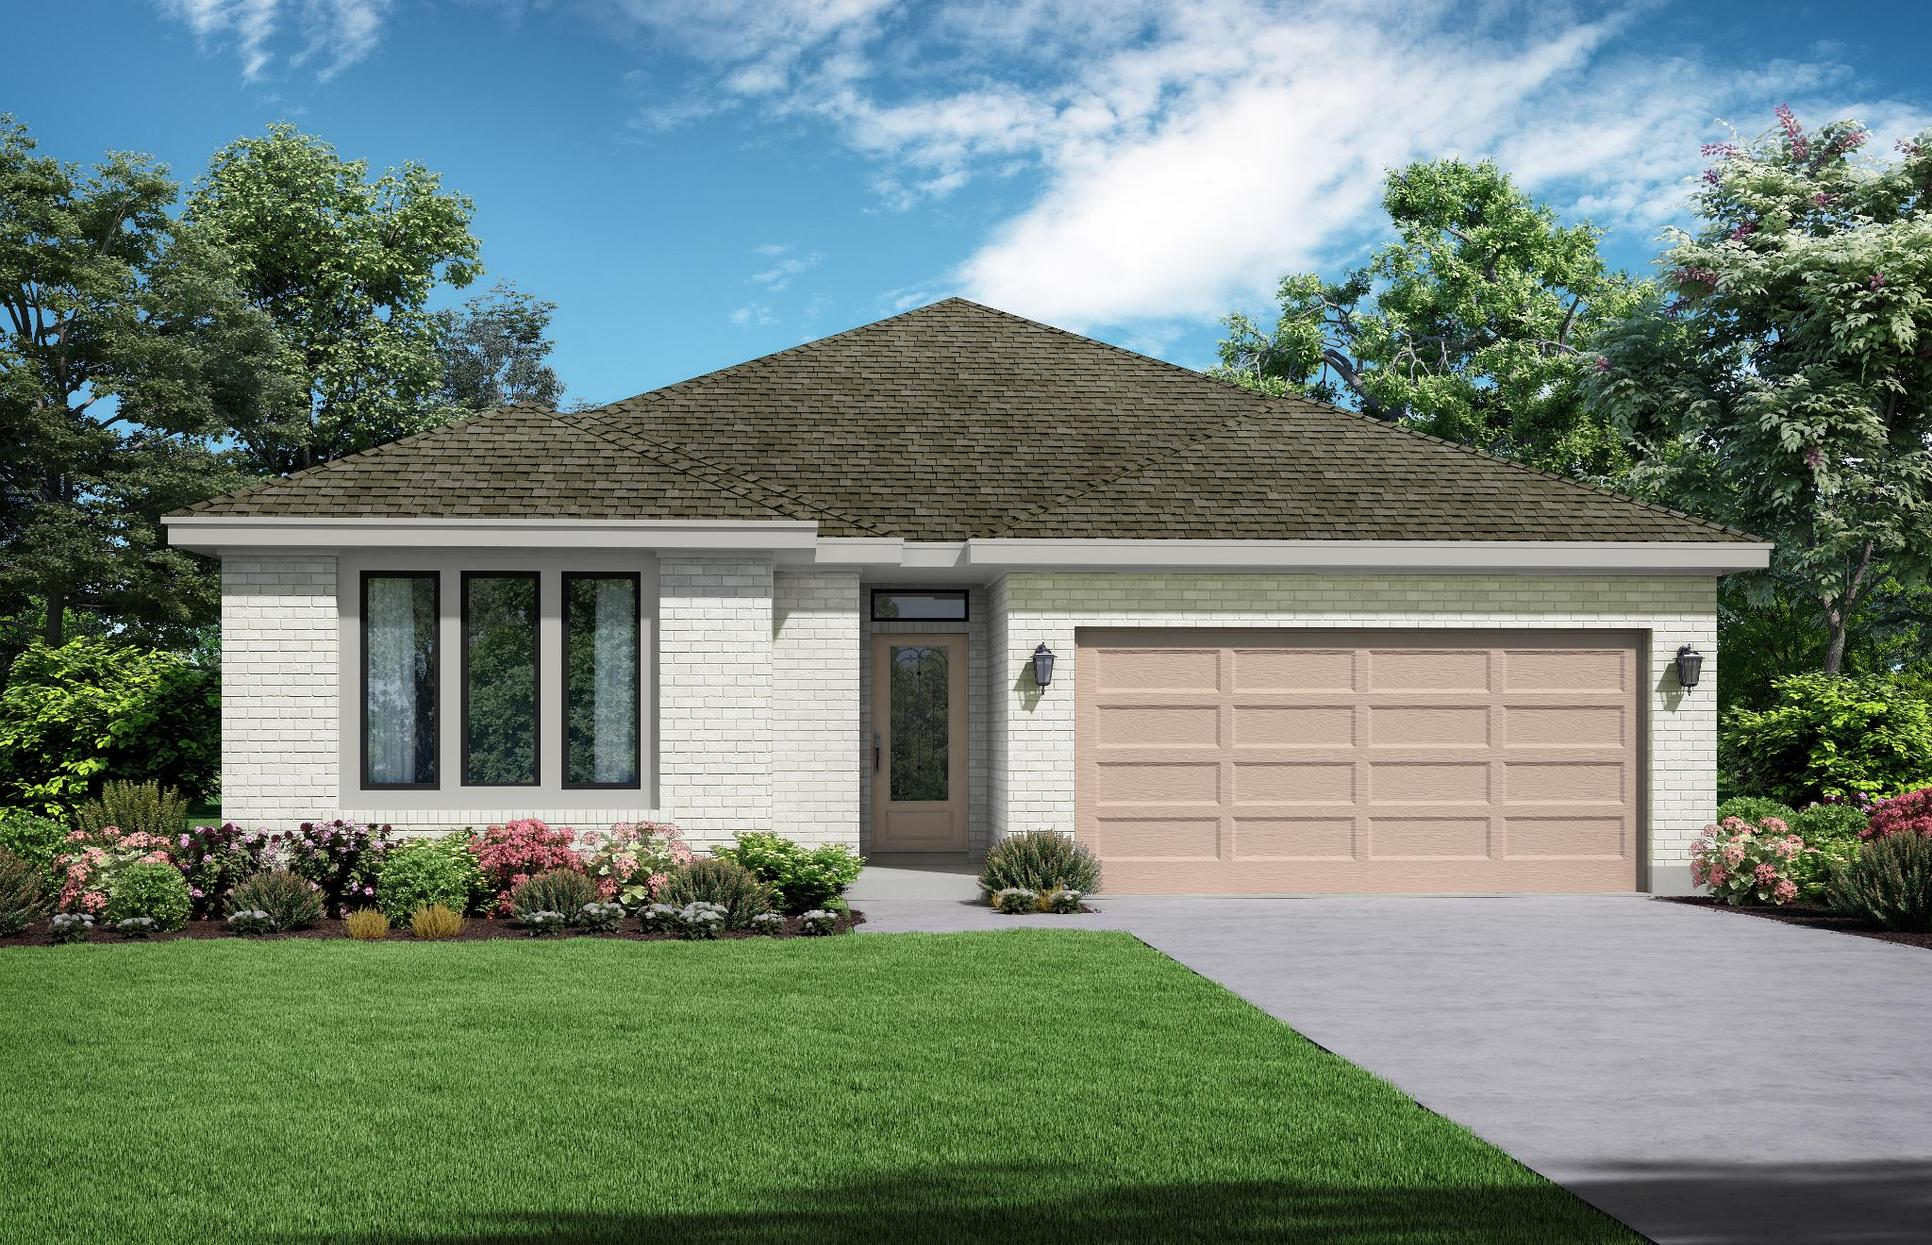 Cottage - Elevation A. Images are artist renderings and will differ from the actual home built.:The Cottage